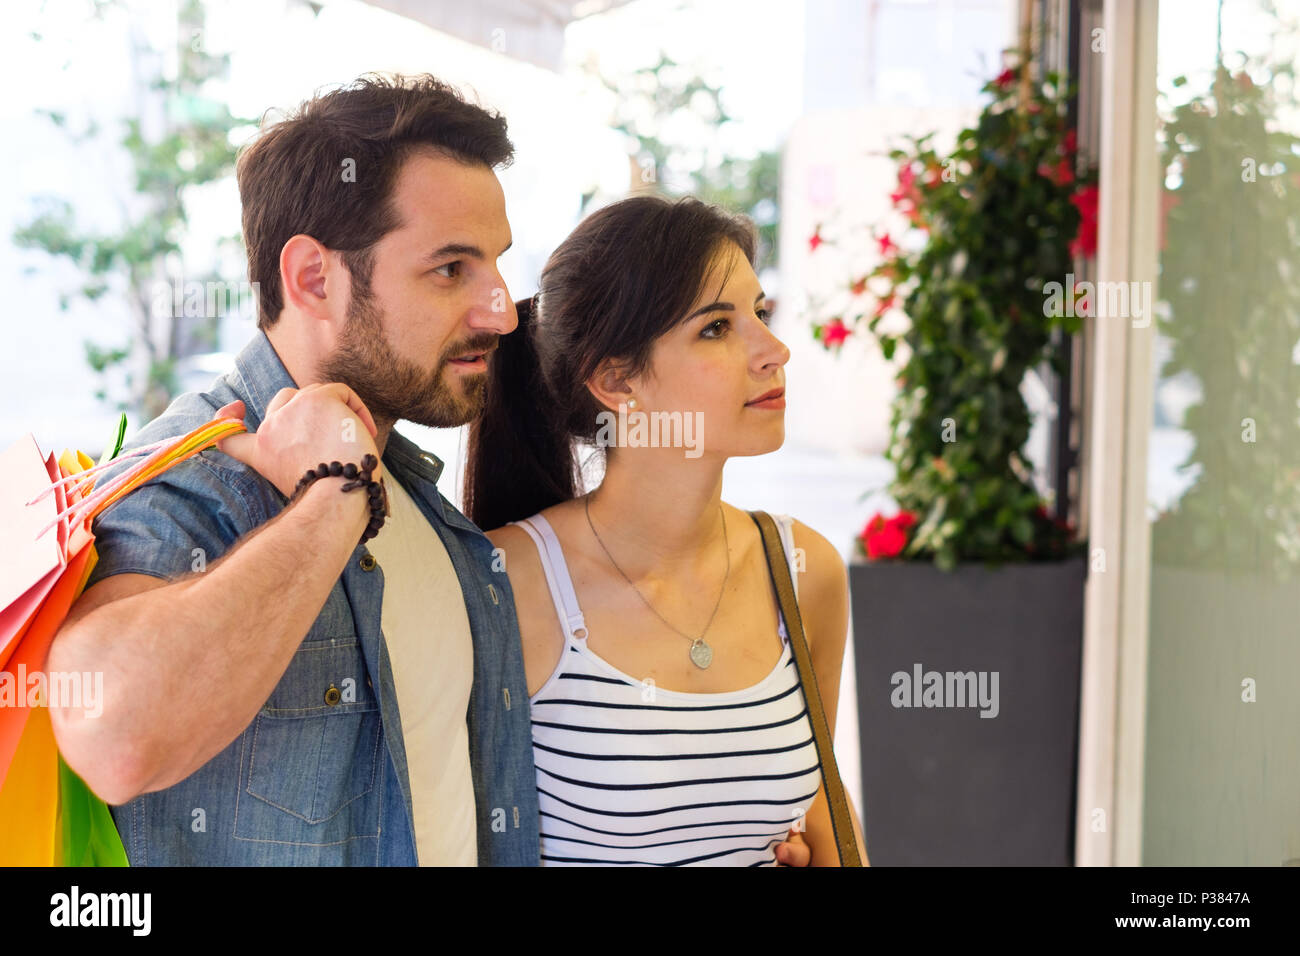 Young happy couple with shopping bags during seasonal sales - Stock Image